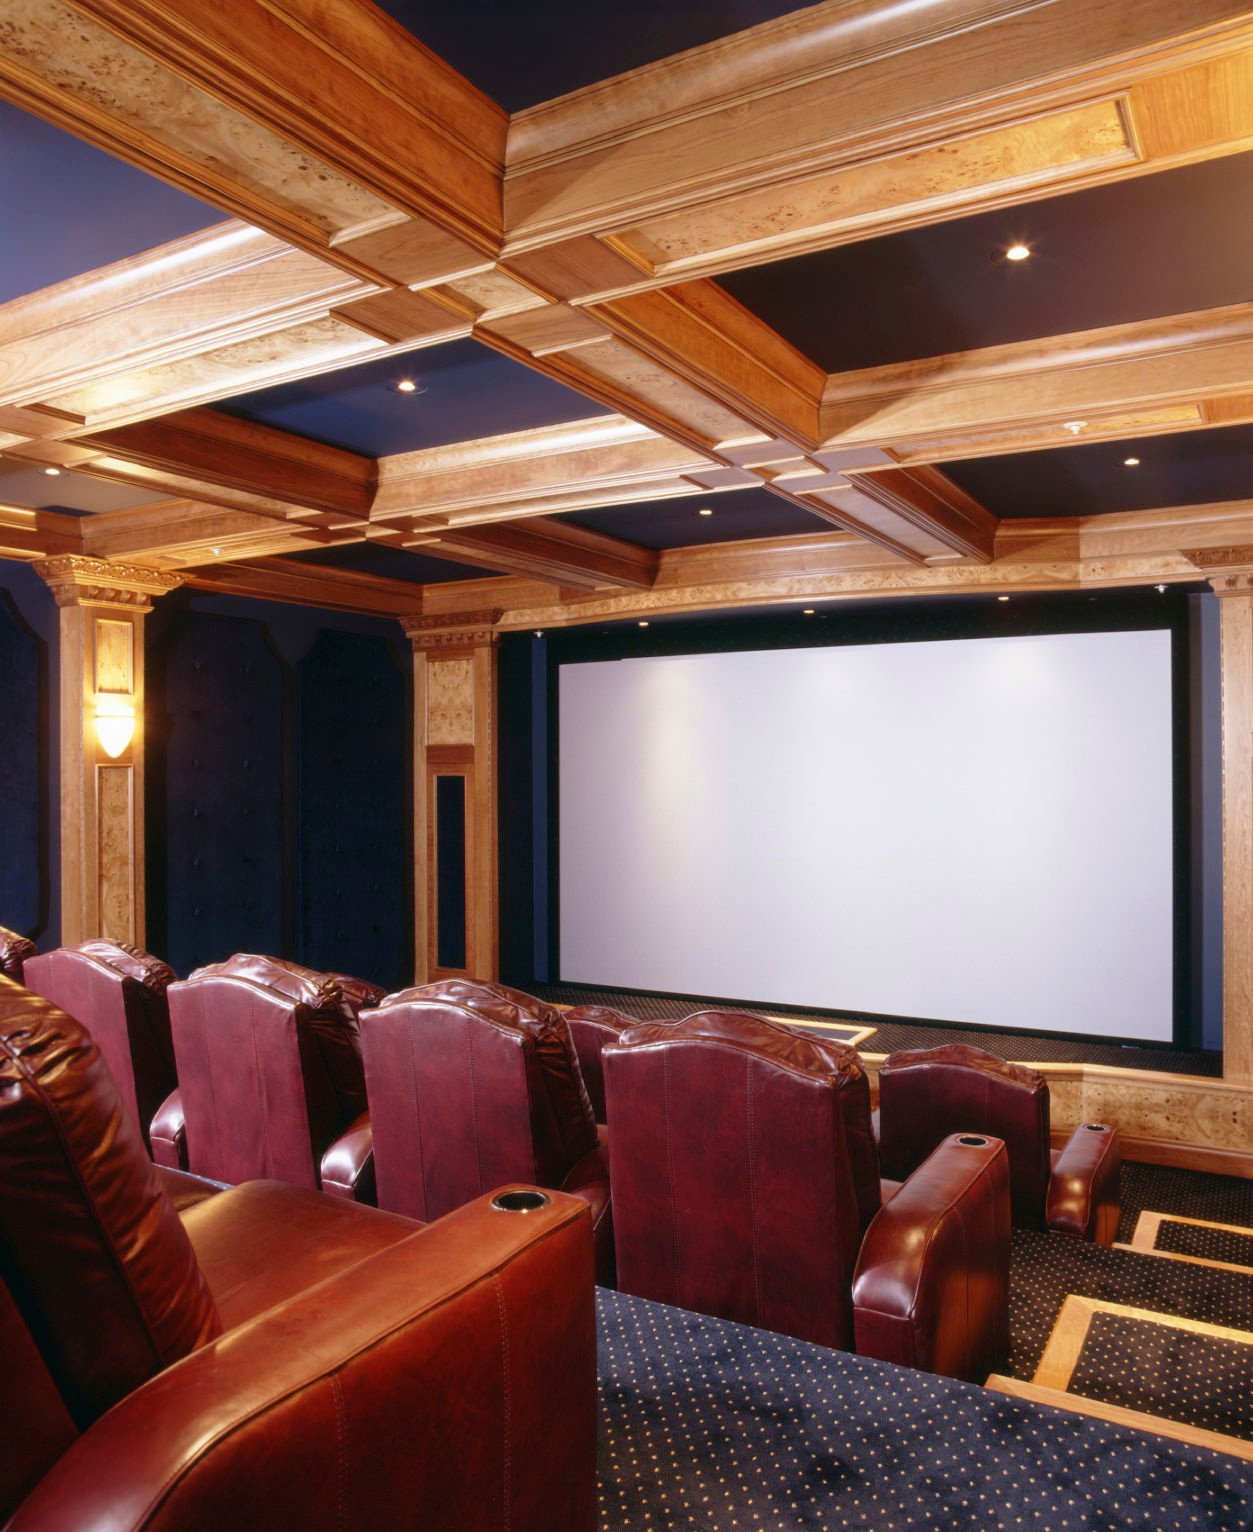 Home Theater Design Ideas Home Theater Masters: 90 Home Theater & Media Room Ideas (Photos